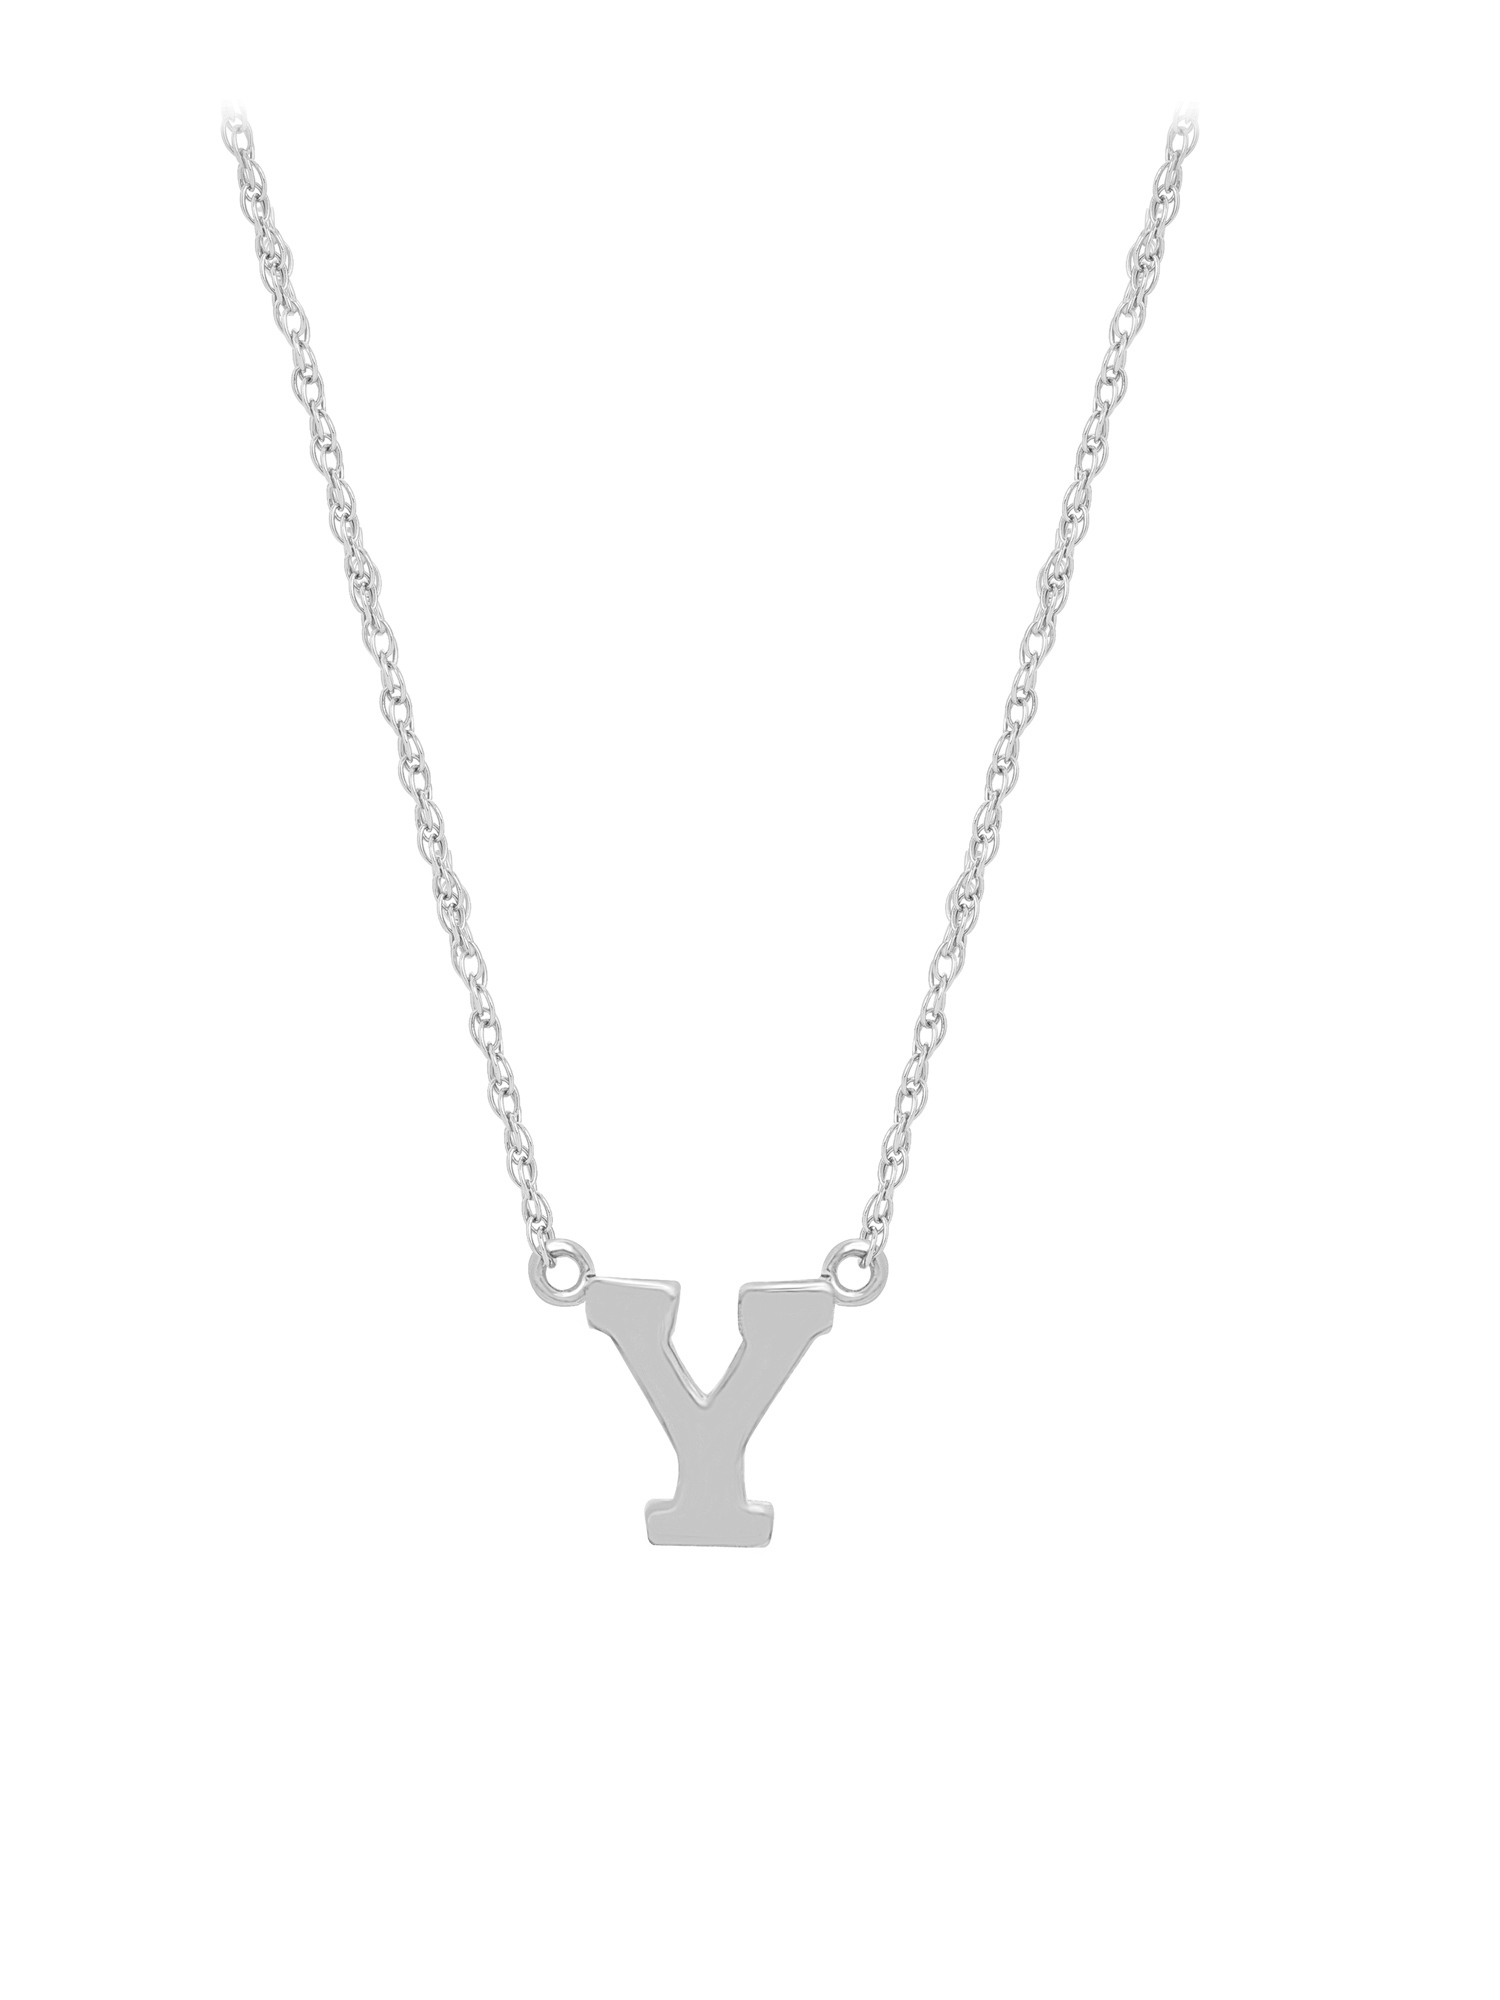 Jewelry Pot Stainless Steel 14k Gold Plated 18in Rhodium-plated Three Stone Synthetic CZ Swirl Necklace